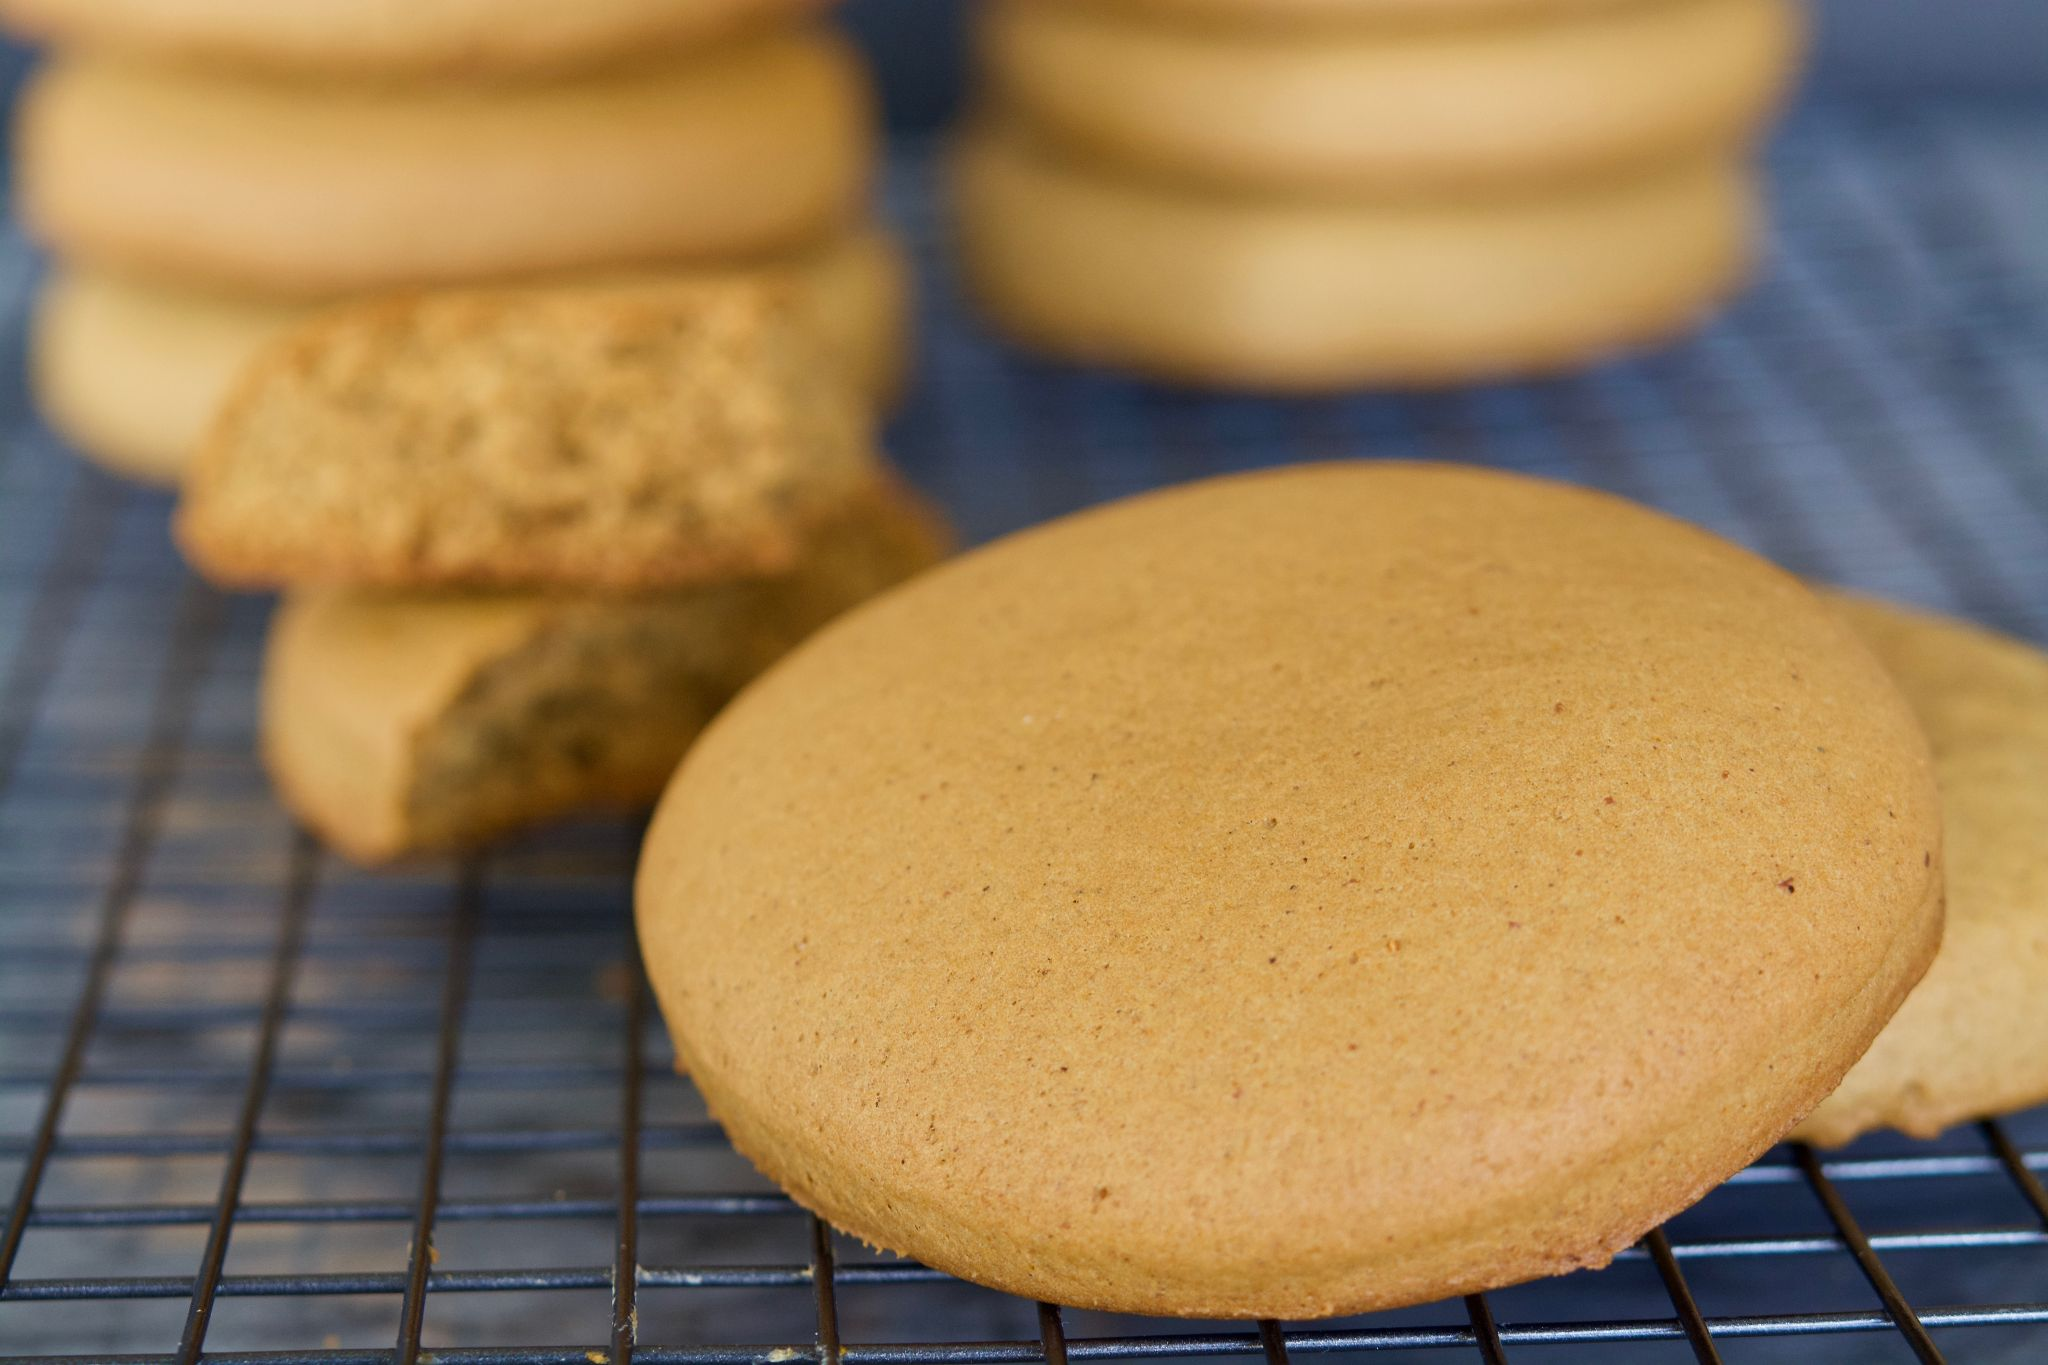 Galletas Cucas (Colombian Gingerbread Cookies)